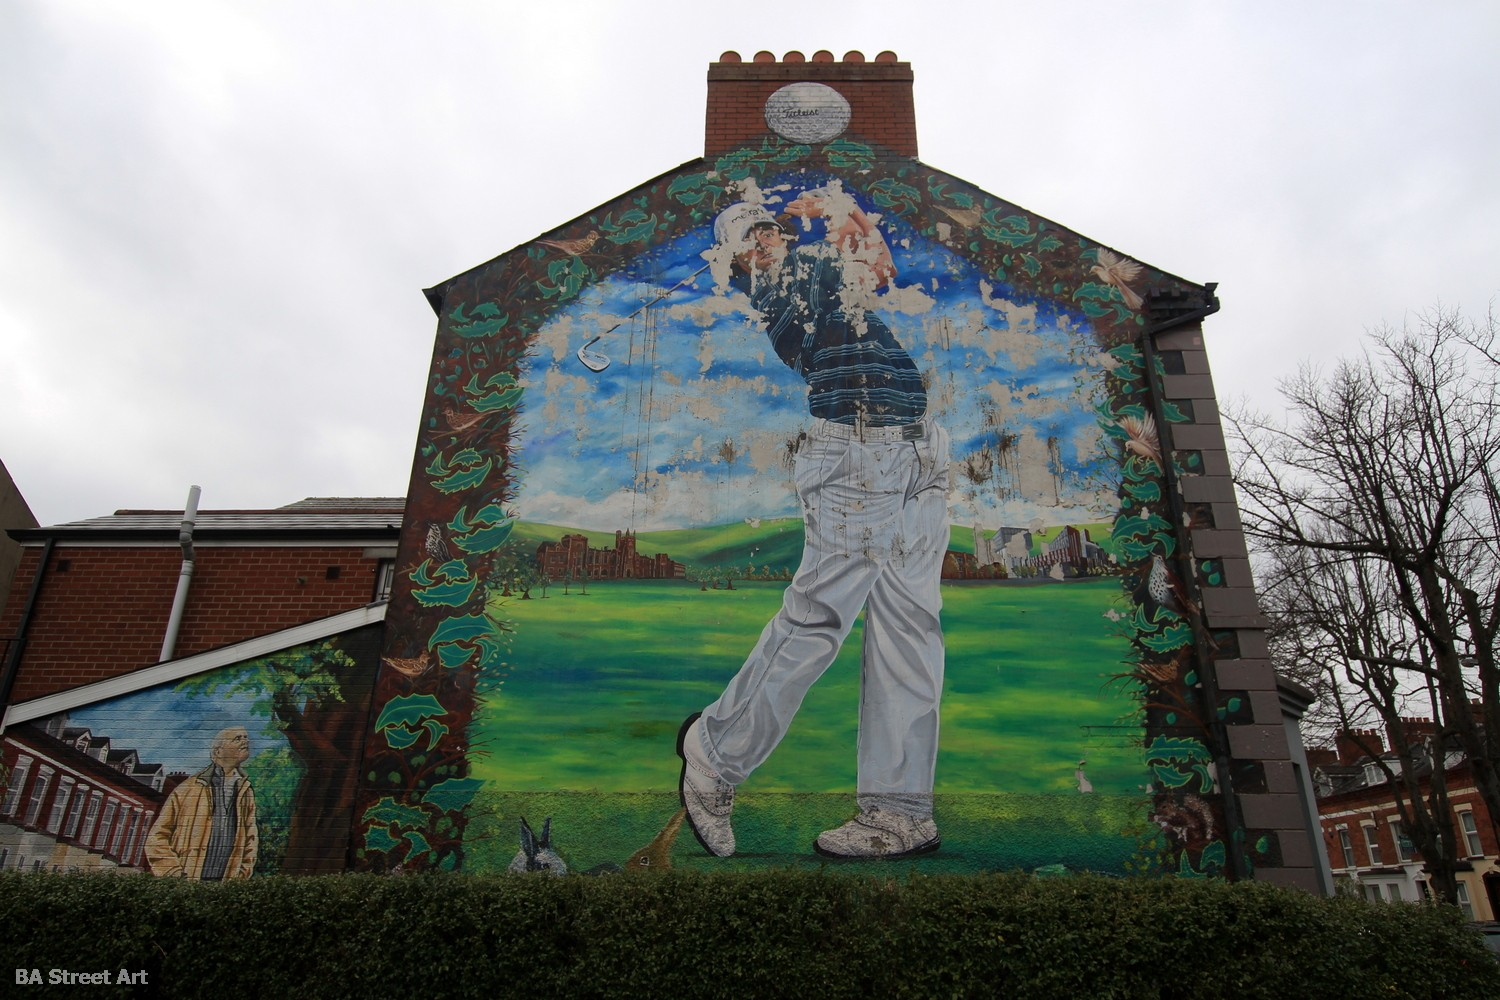 Rory McIlroy mural belfast holyland gable northern ireland golfer golf street art